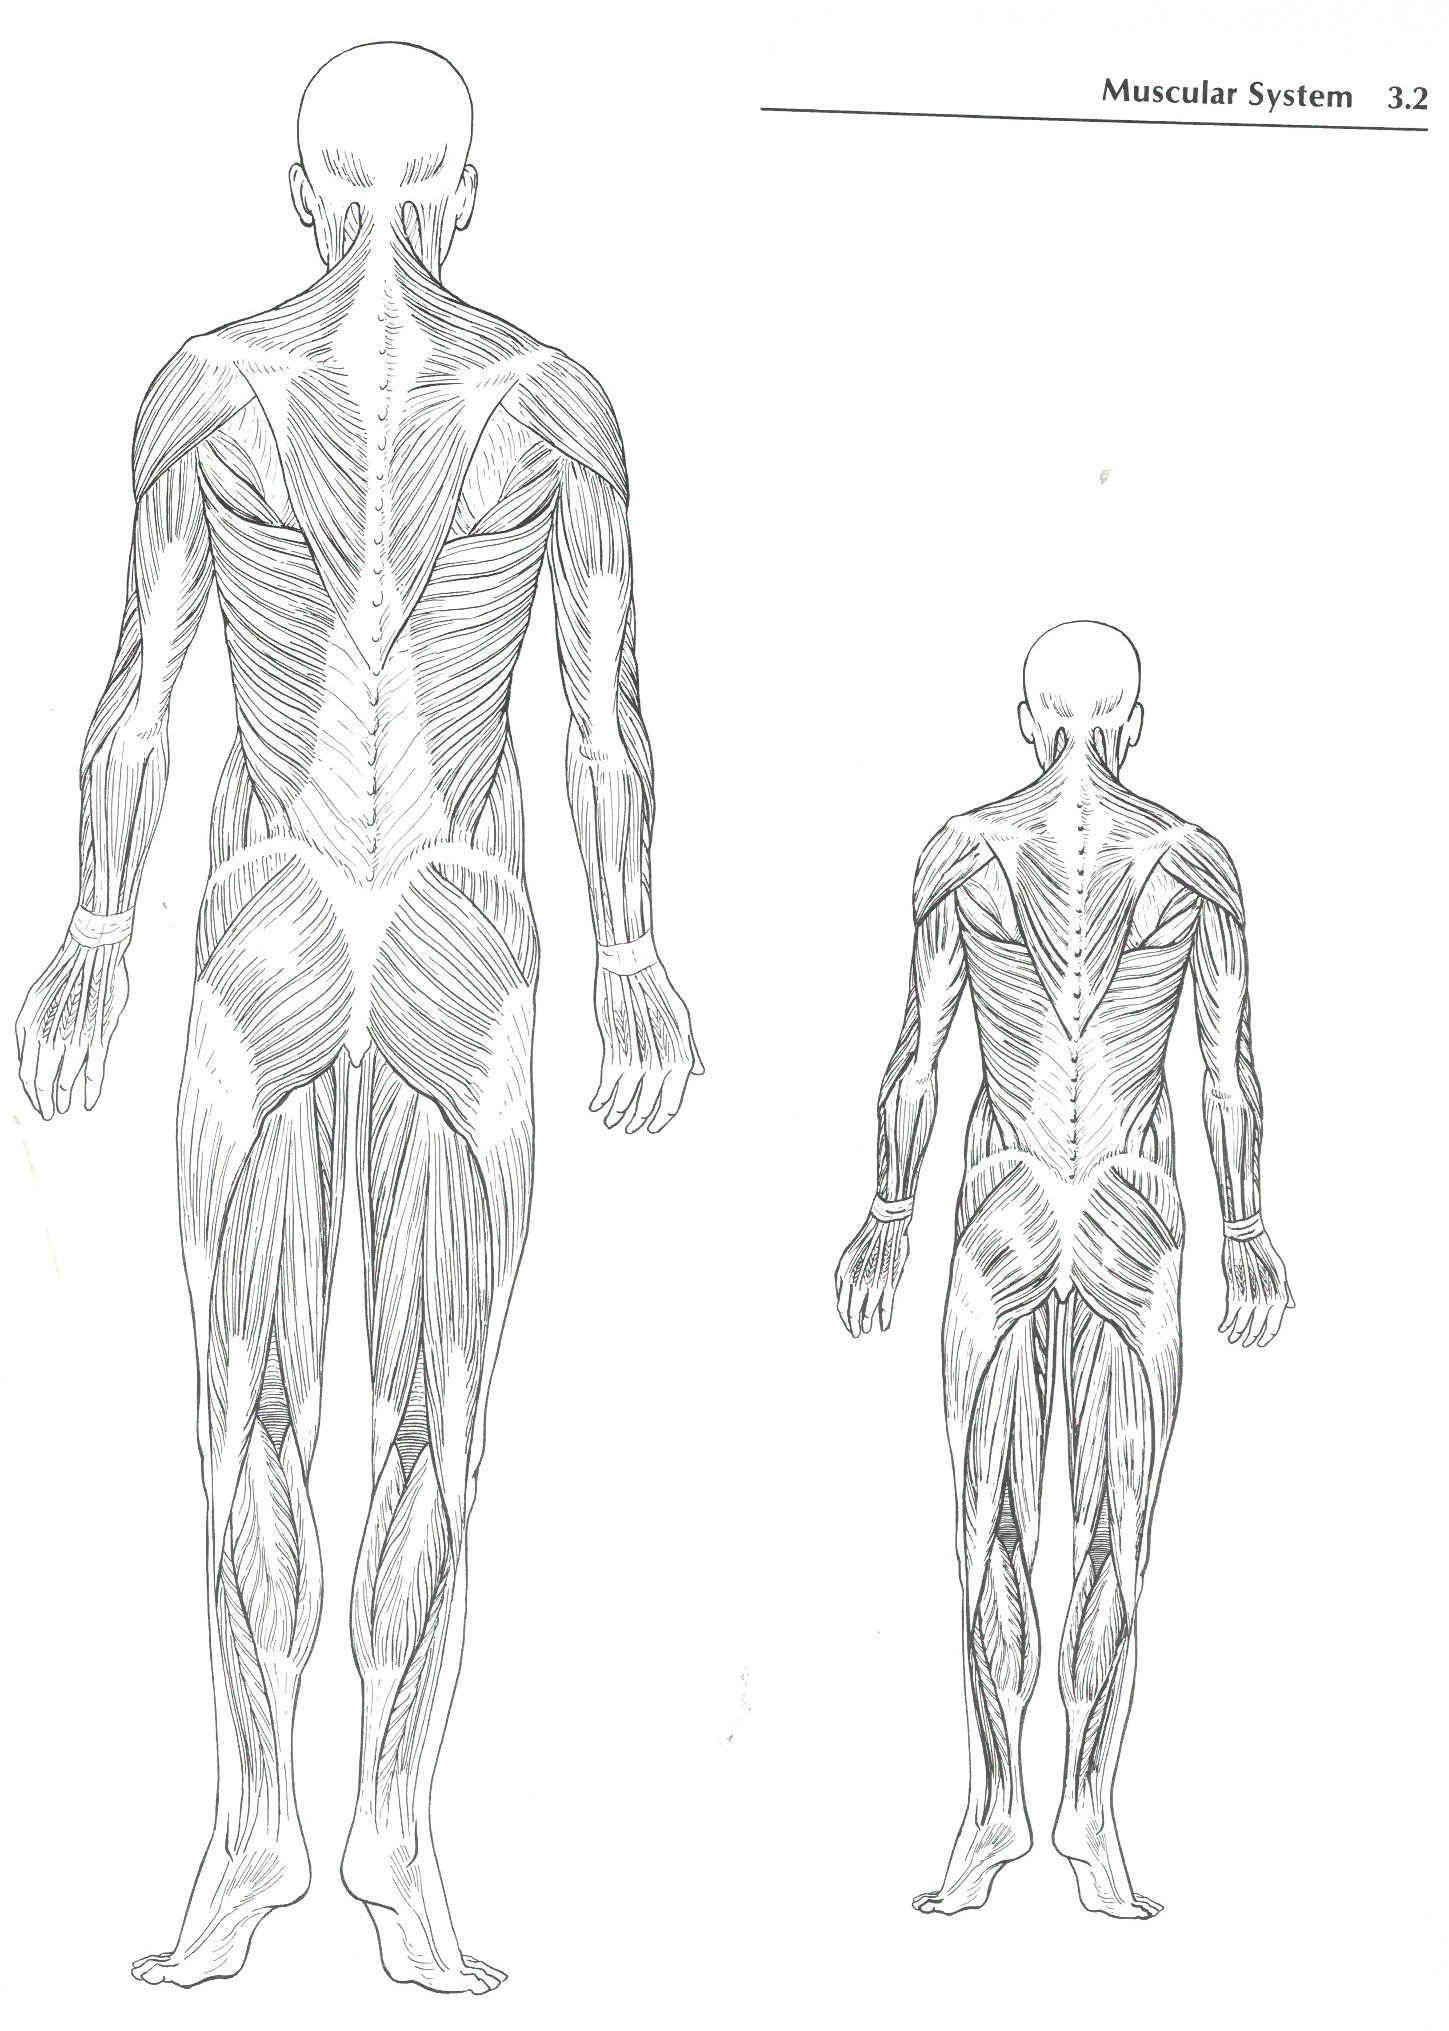 The Back Of The Muscular System From Earlier Medical